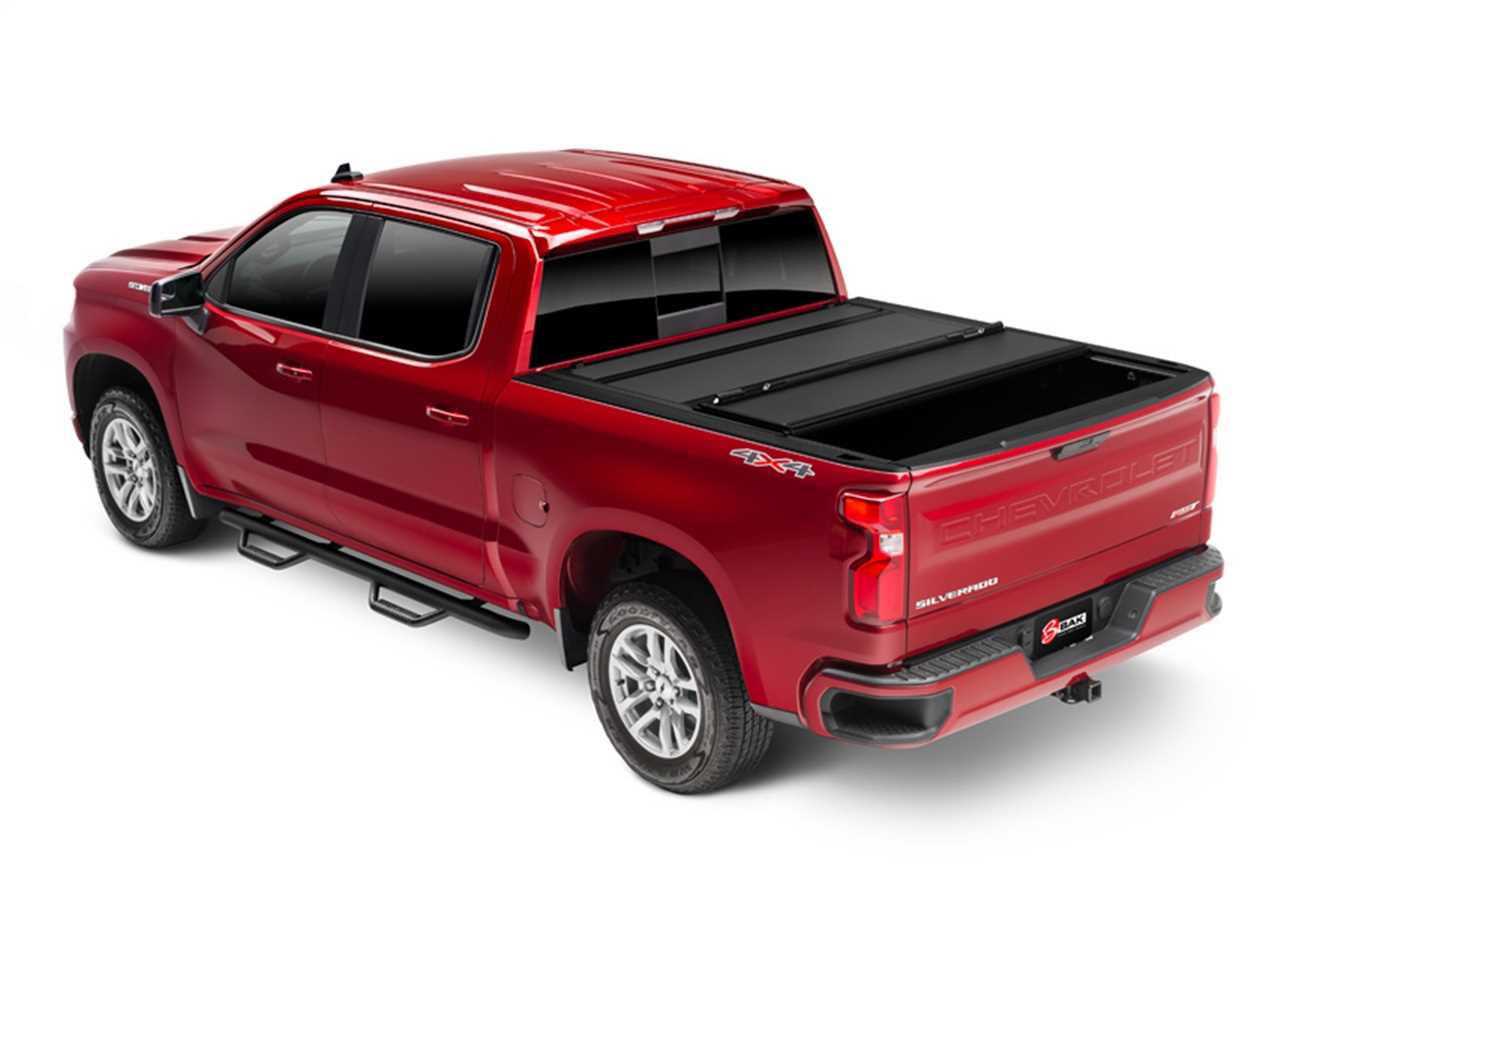 448131 Bak Industries BAKFlip MX4 Hard Folding Truck Bed Cover